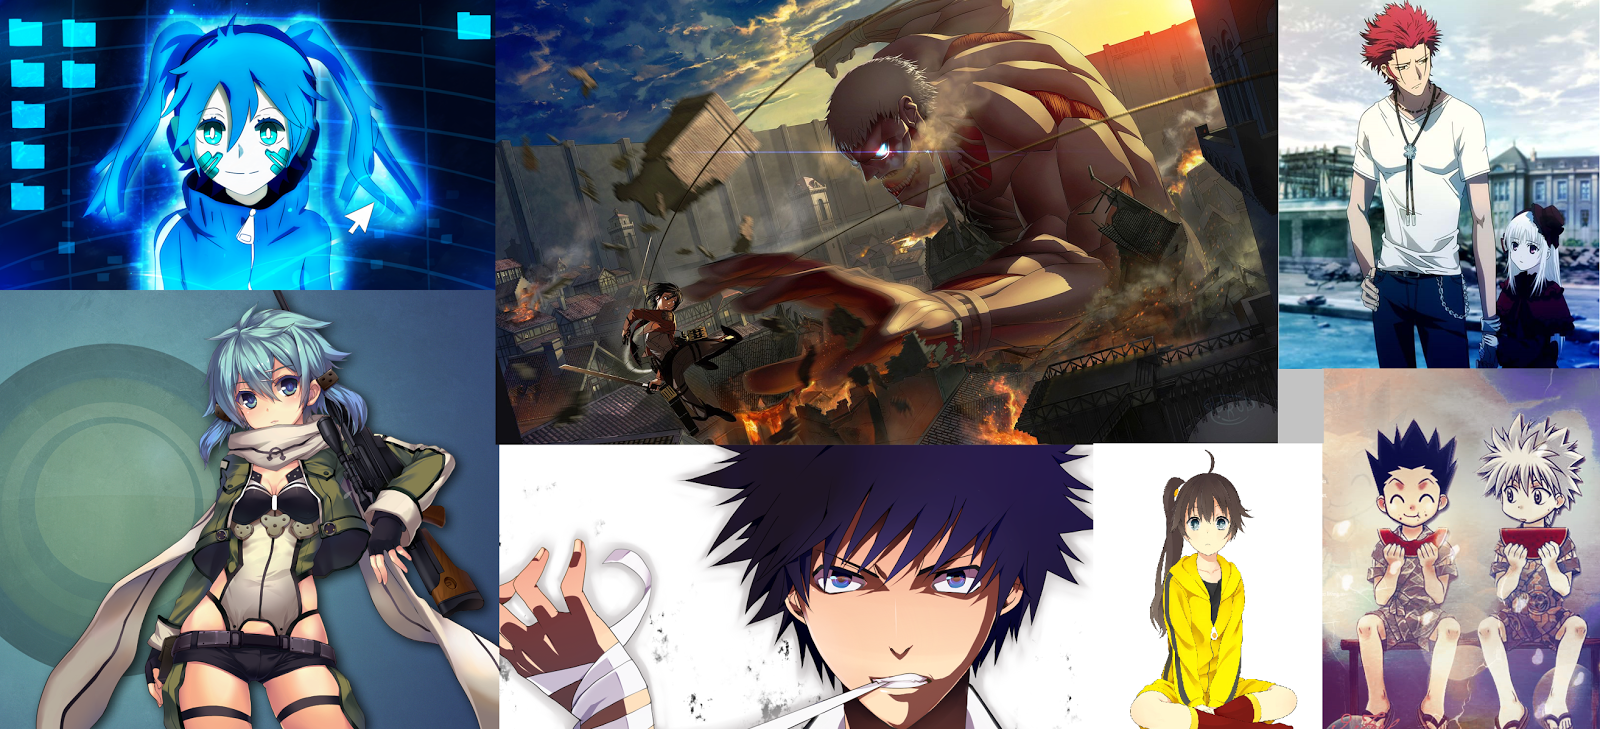 Download 100 Wallpaper Anime Hd Pack Zip HD Terbaik